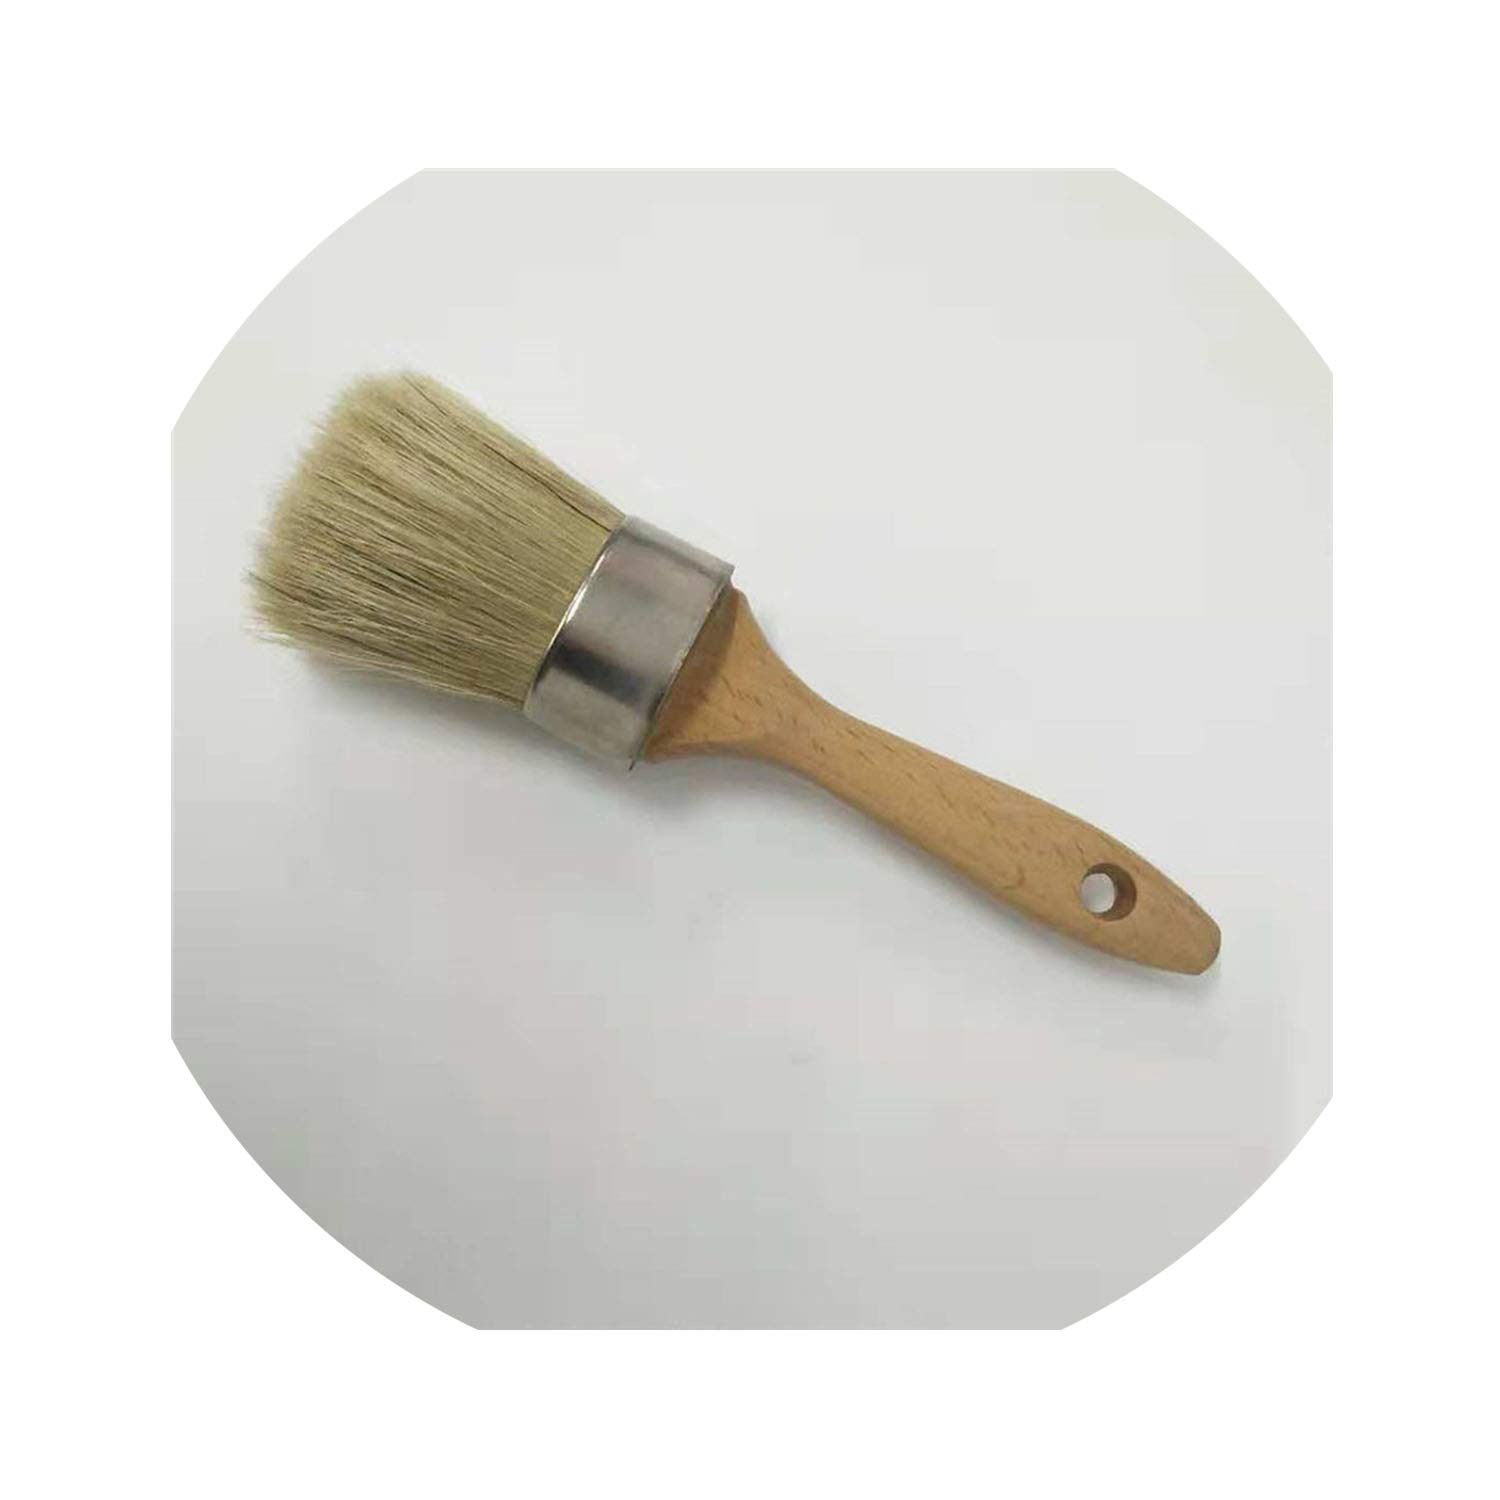 2 Inch Oval Chalk and Wax Paint Brush for Furniture Painting Waxing and Stenciling by O-lovey